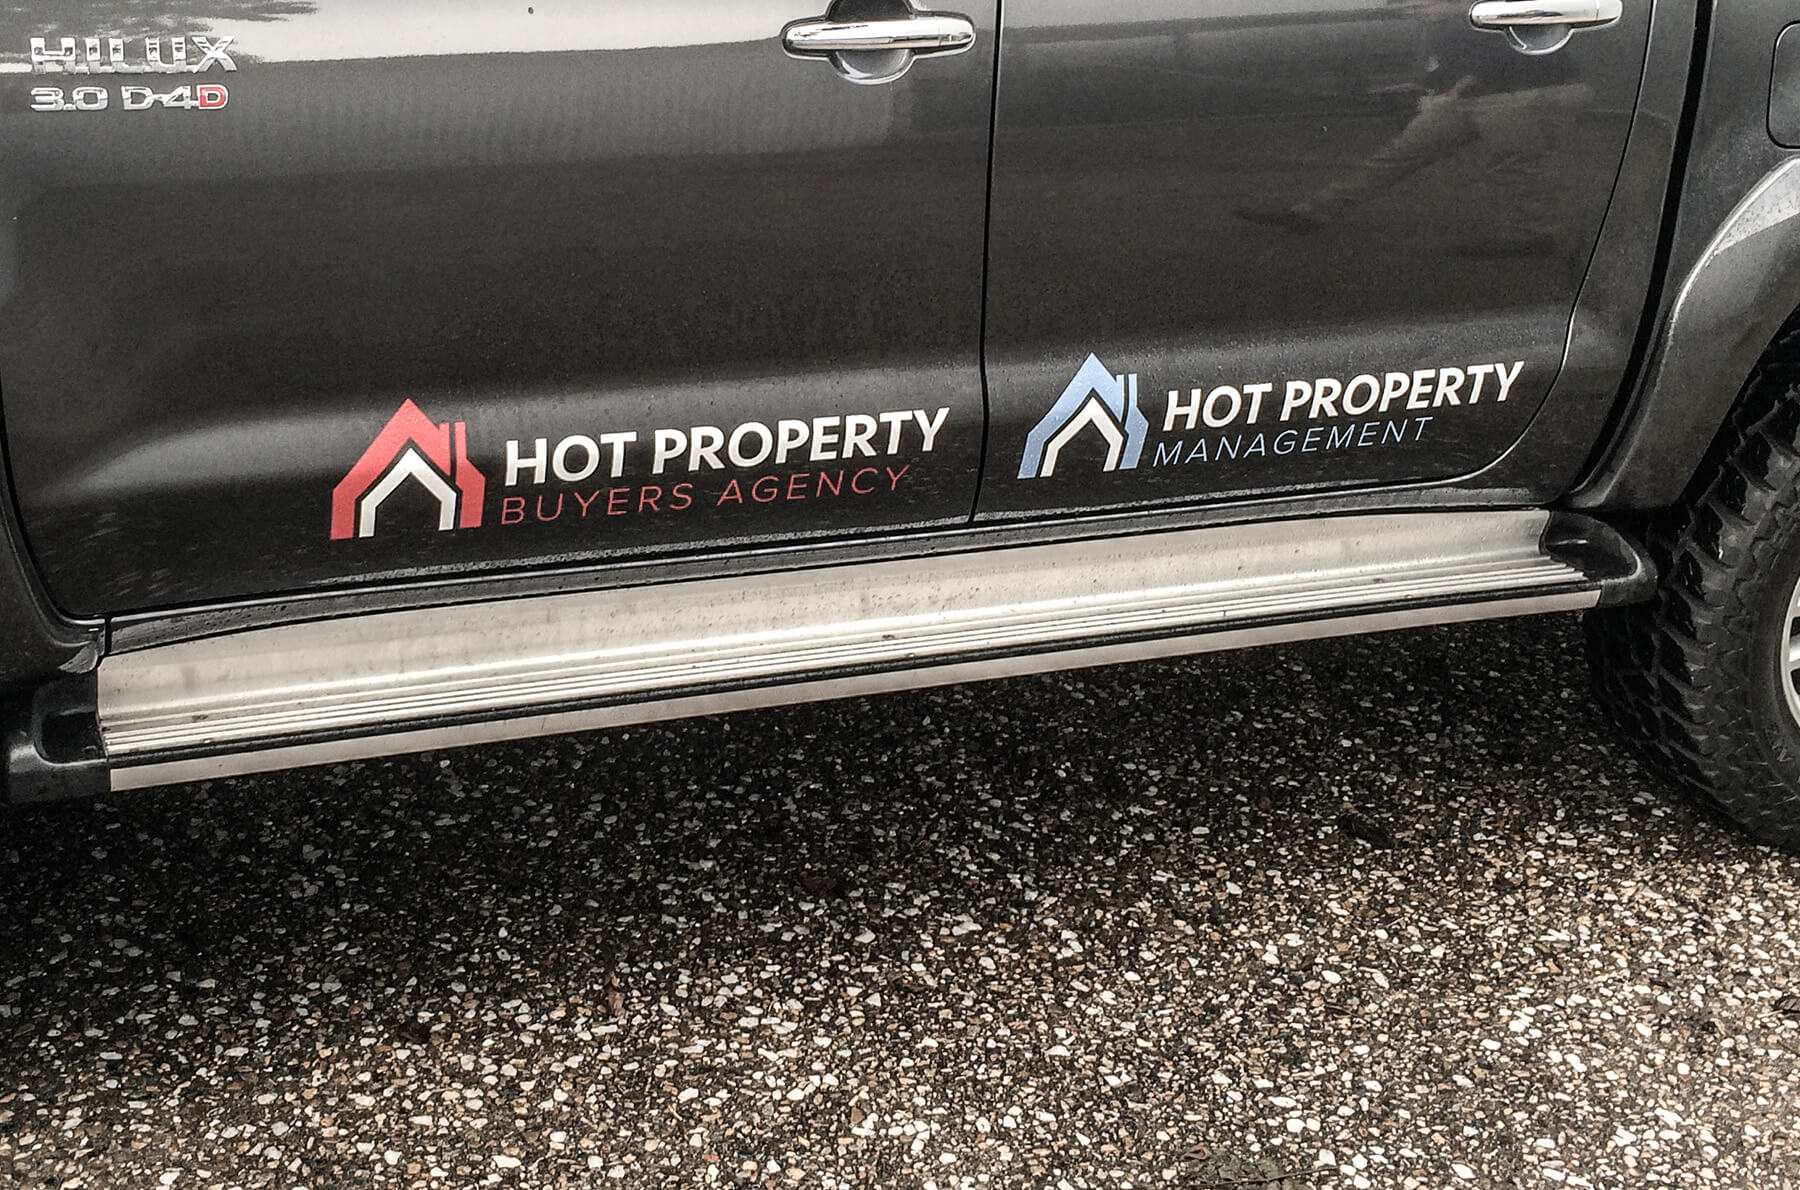 Hot Property Vehicle Signage